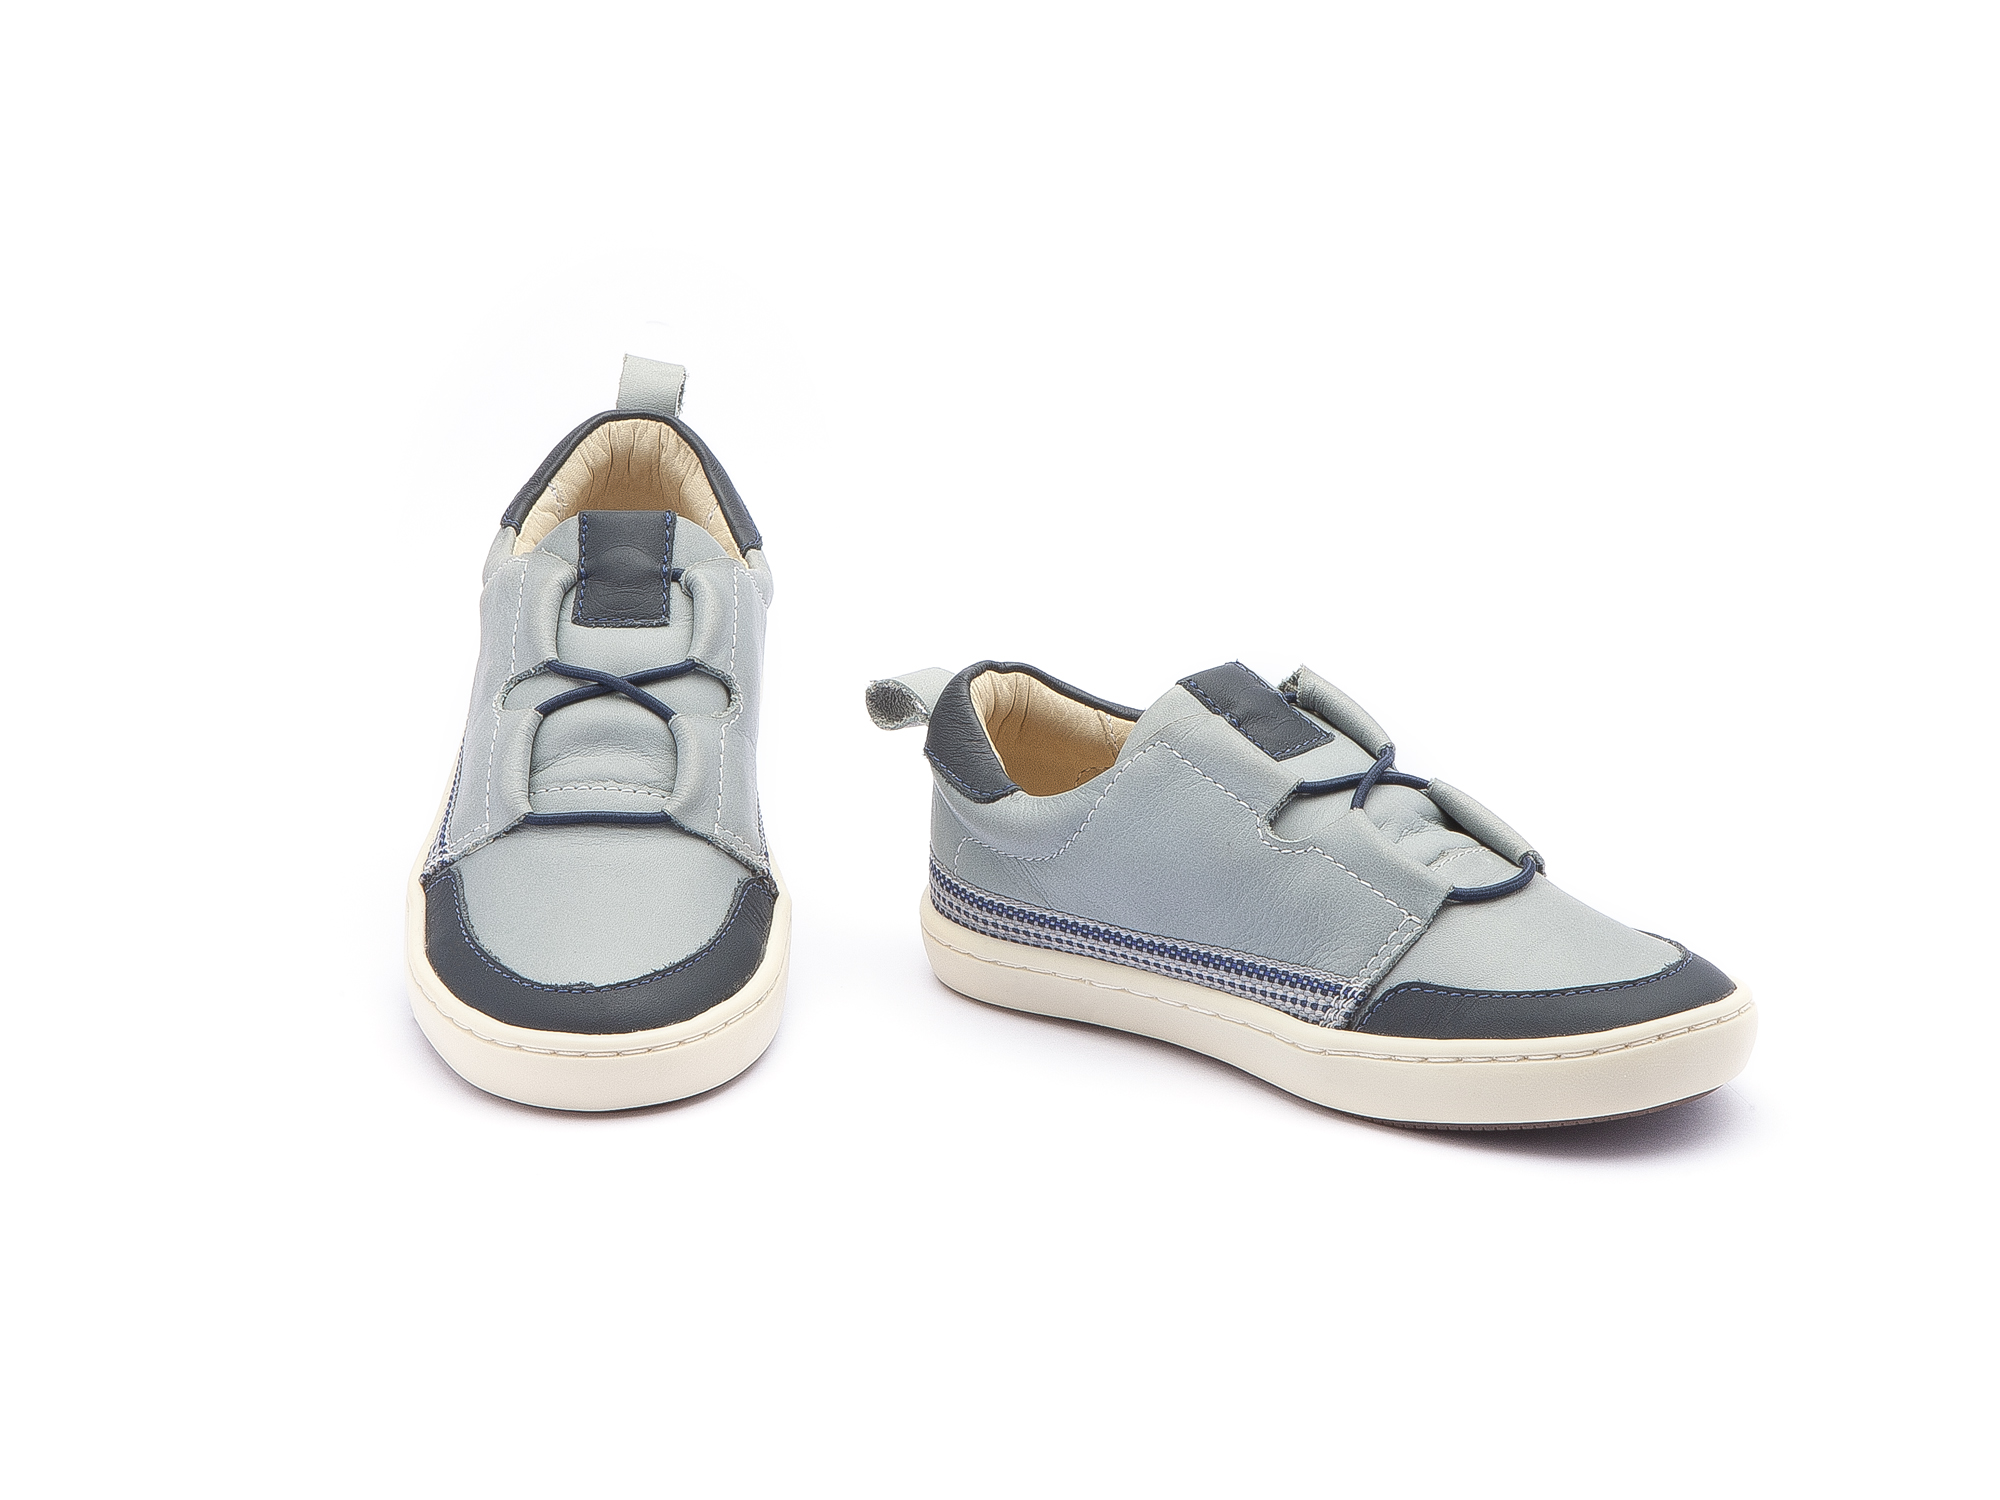 Sneaker Casual Little Ancestral Slate Blue Toddler 2 à 4 anos - 1